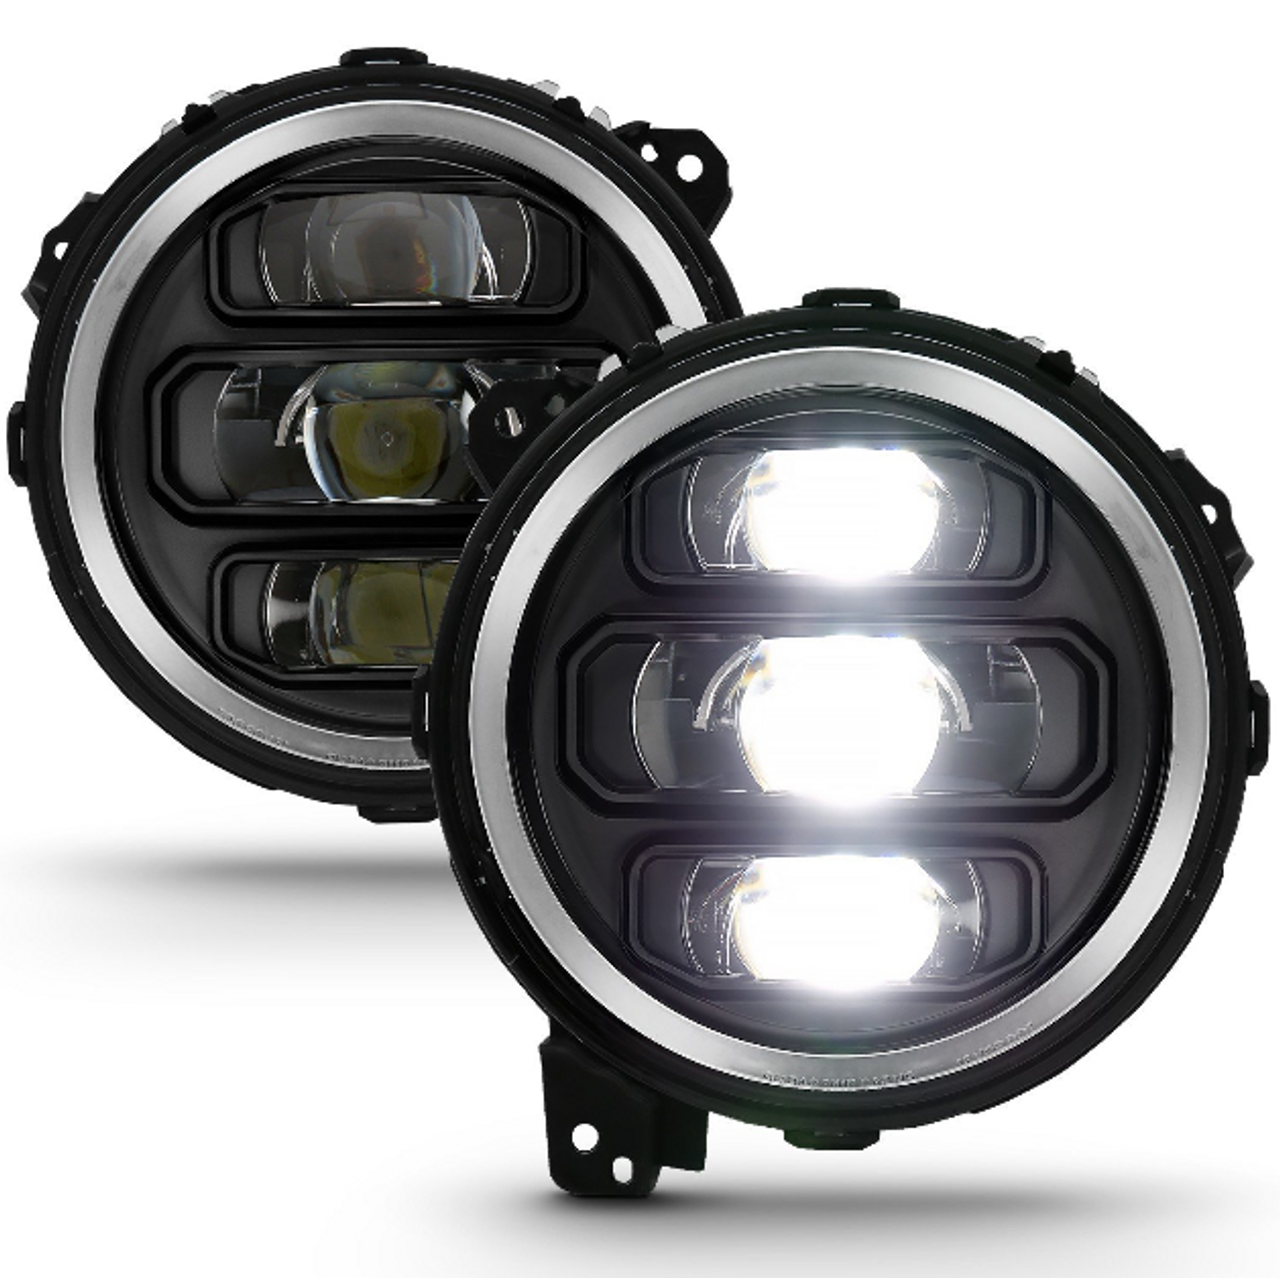 Anzo USA 111466 Full LED Projector Headlights in Black for Jeep Wrangler JL & Gladiator JT 2018+